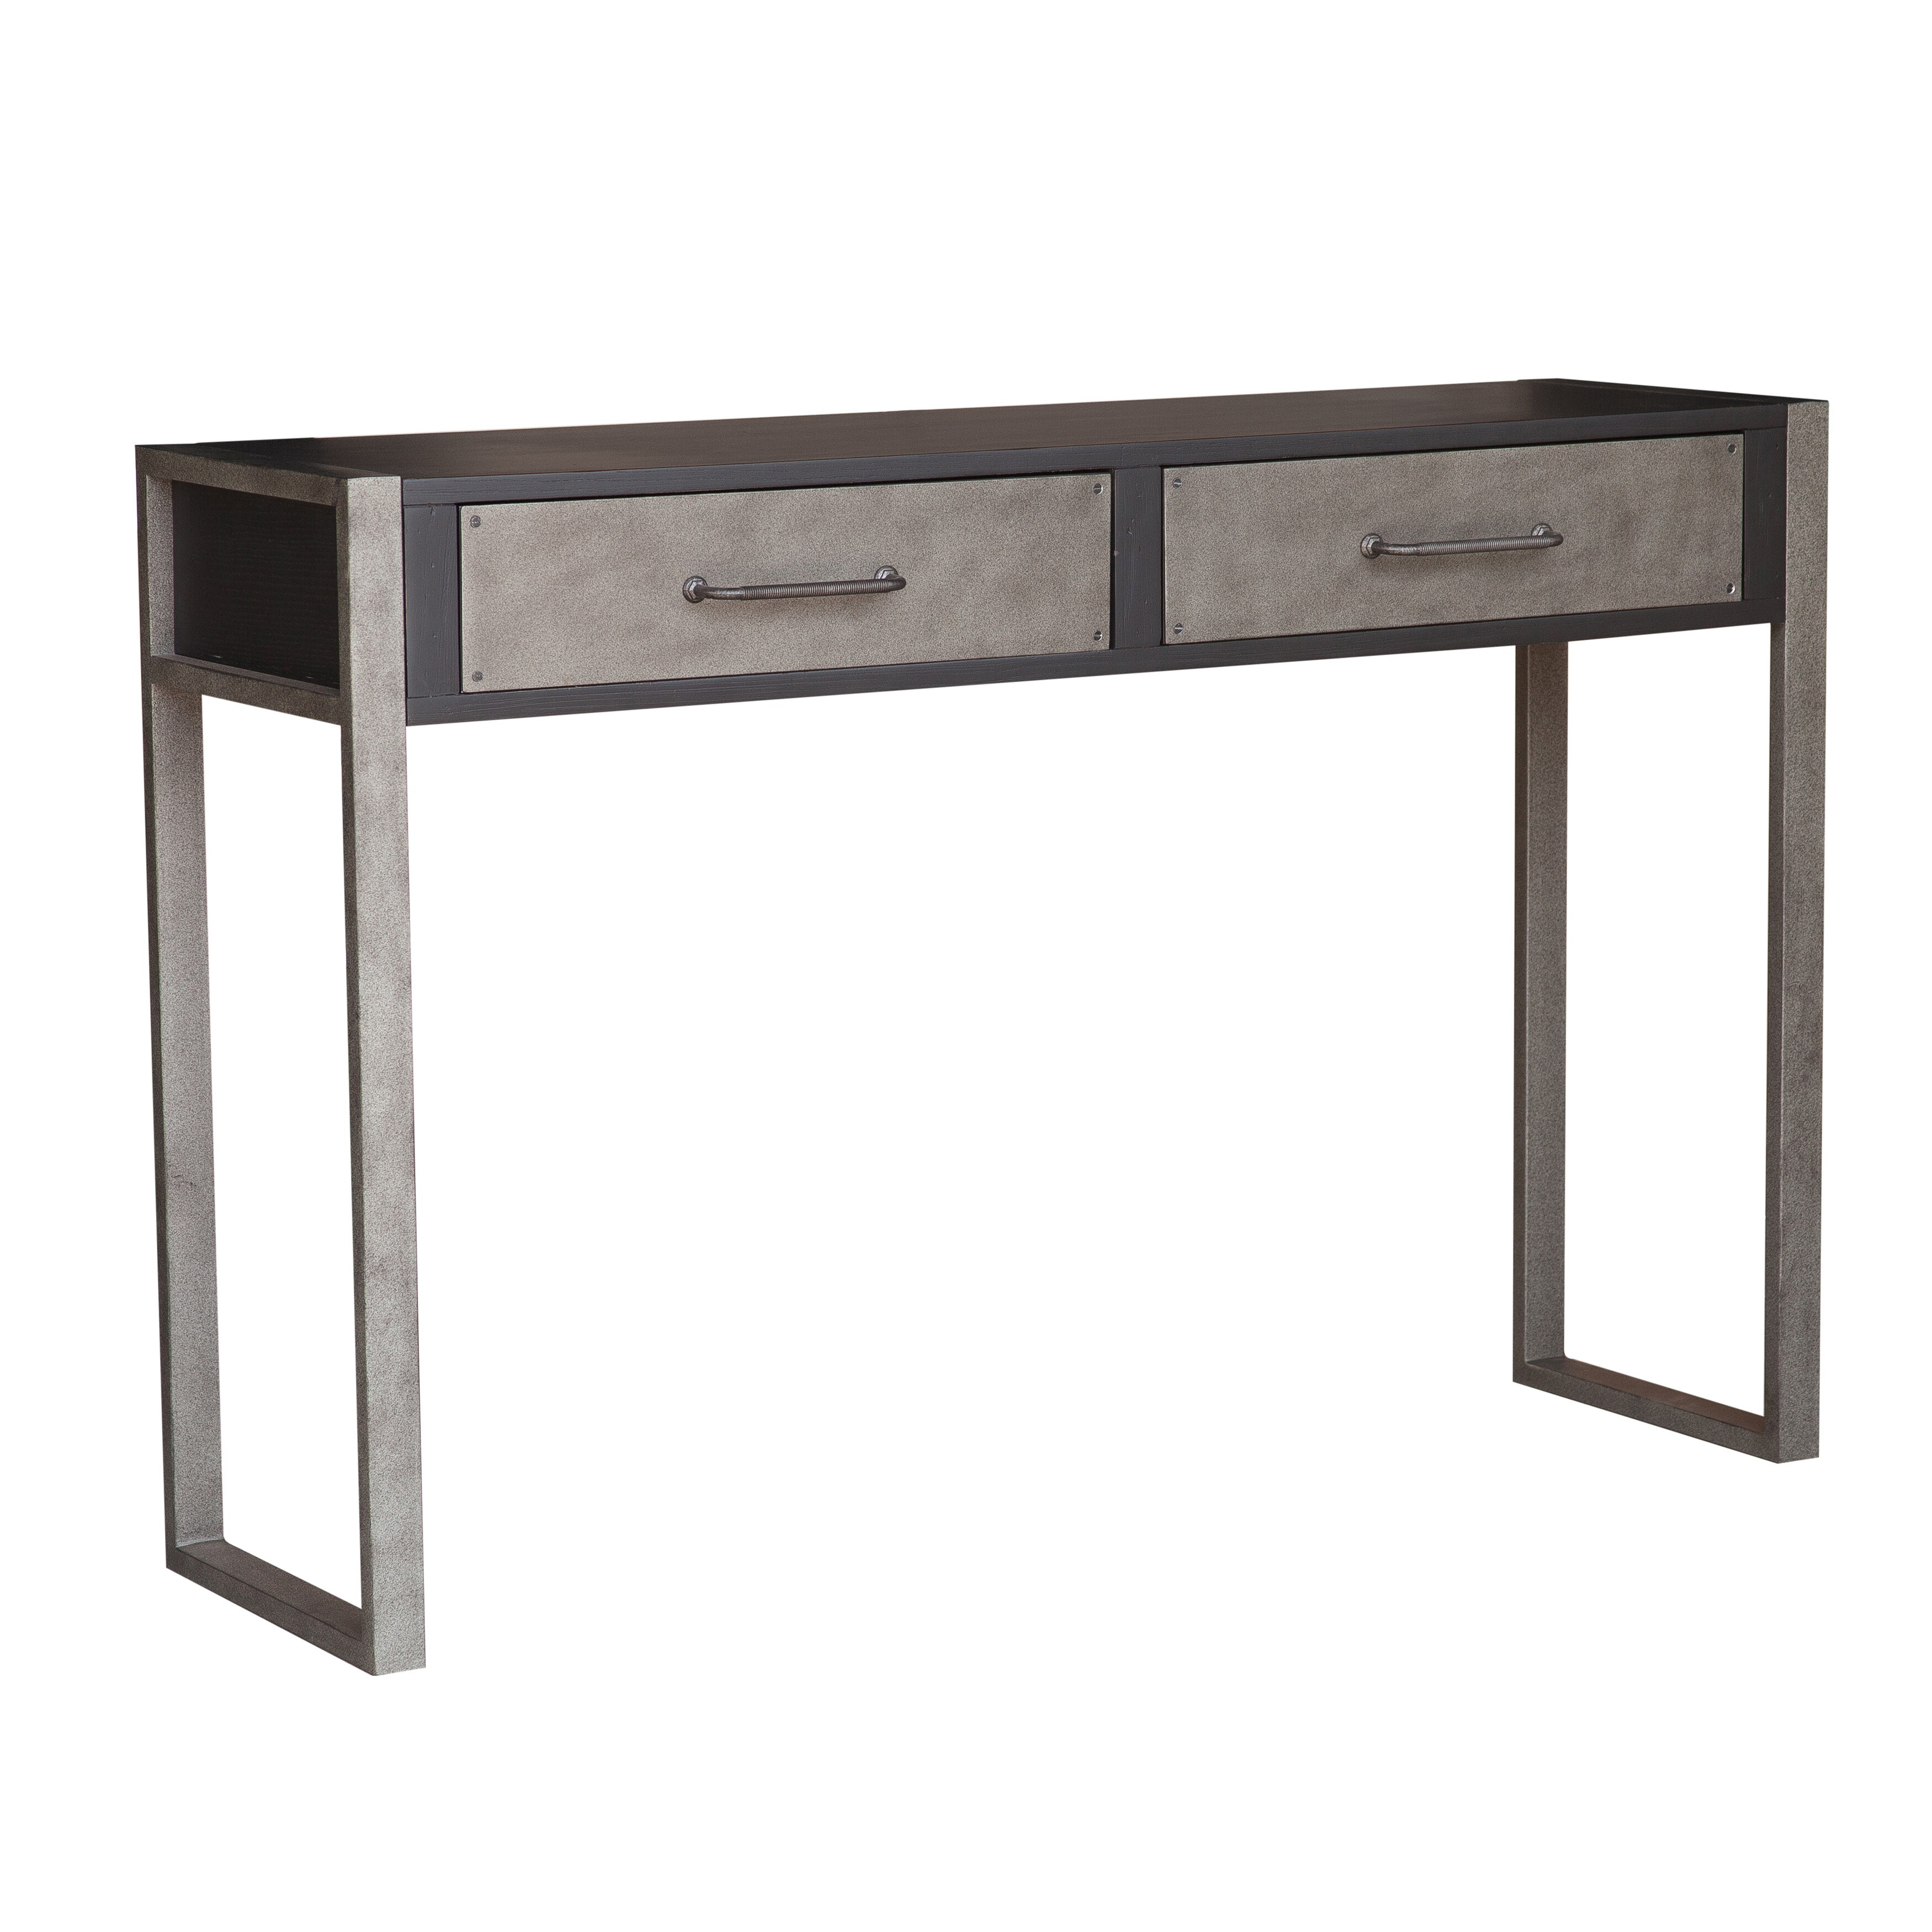 Bledsoe Distressed 2 Drawers Storage Console Table